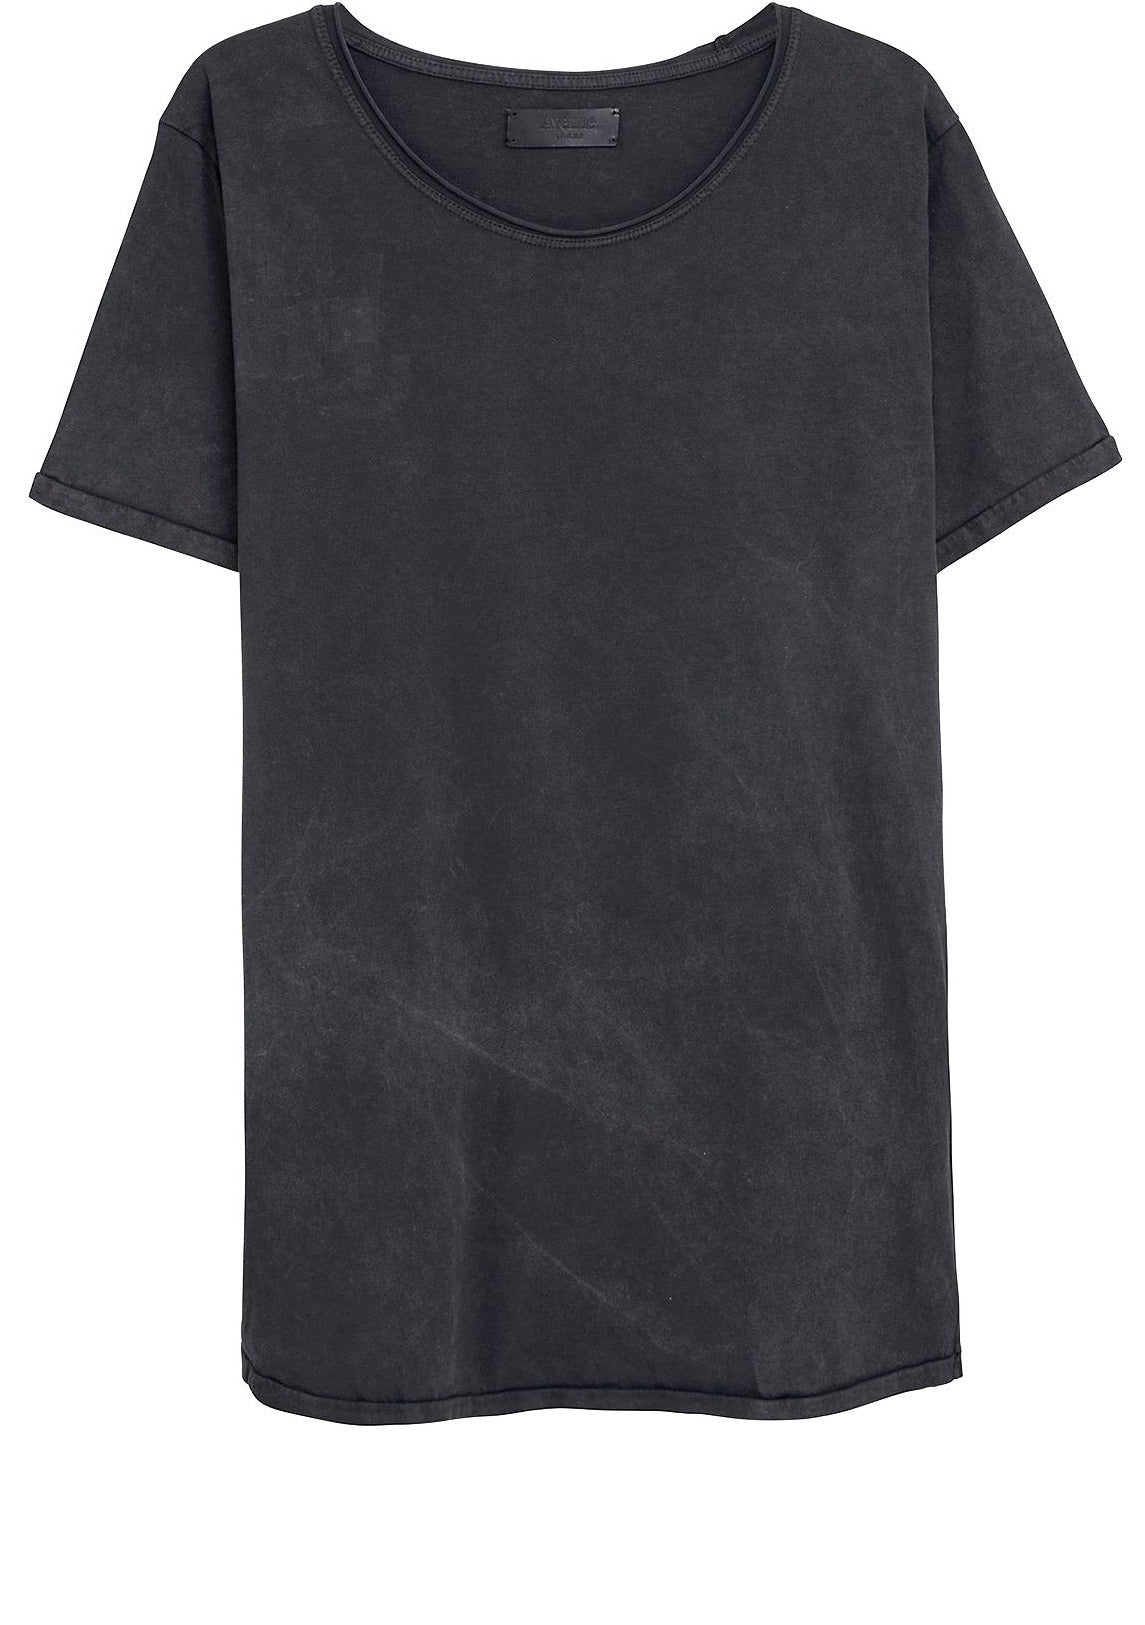 Basic T-Shirt Cut Collar - Black Washed